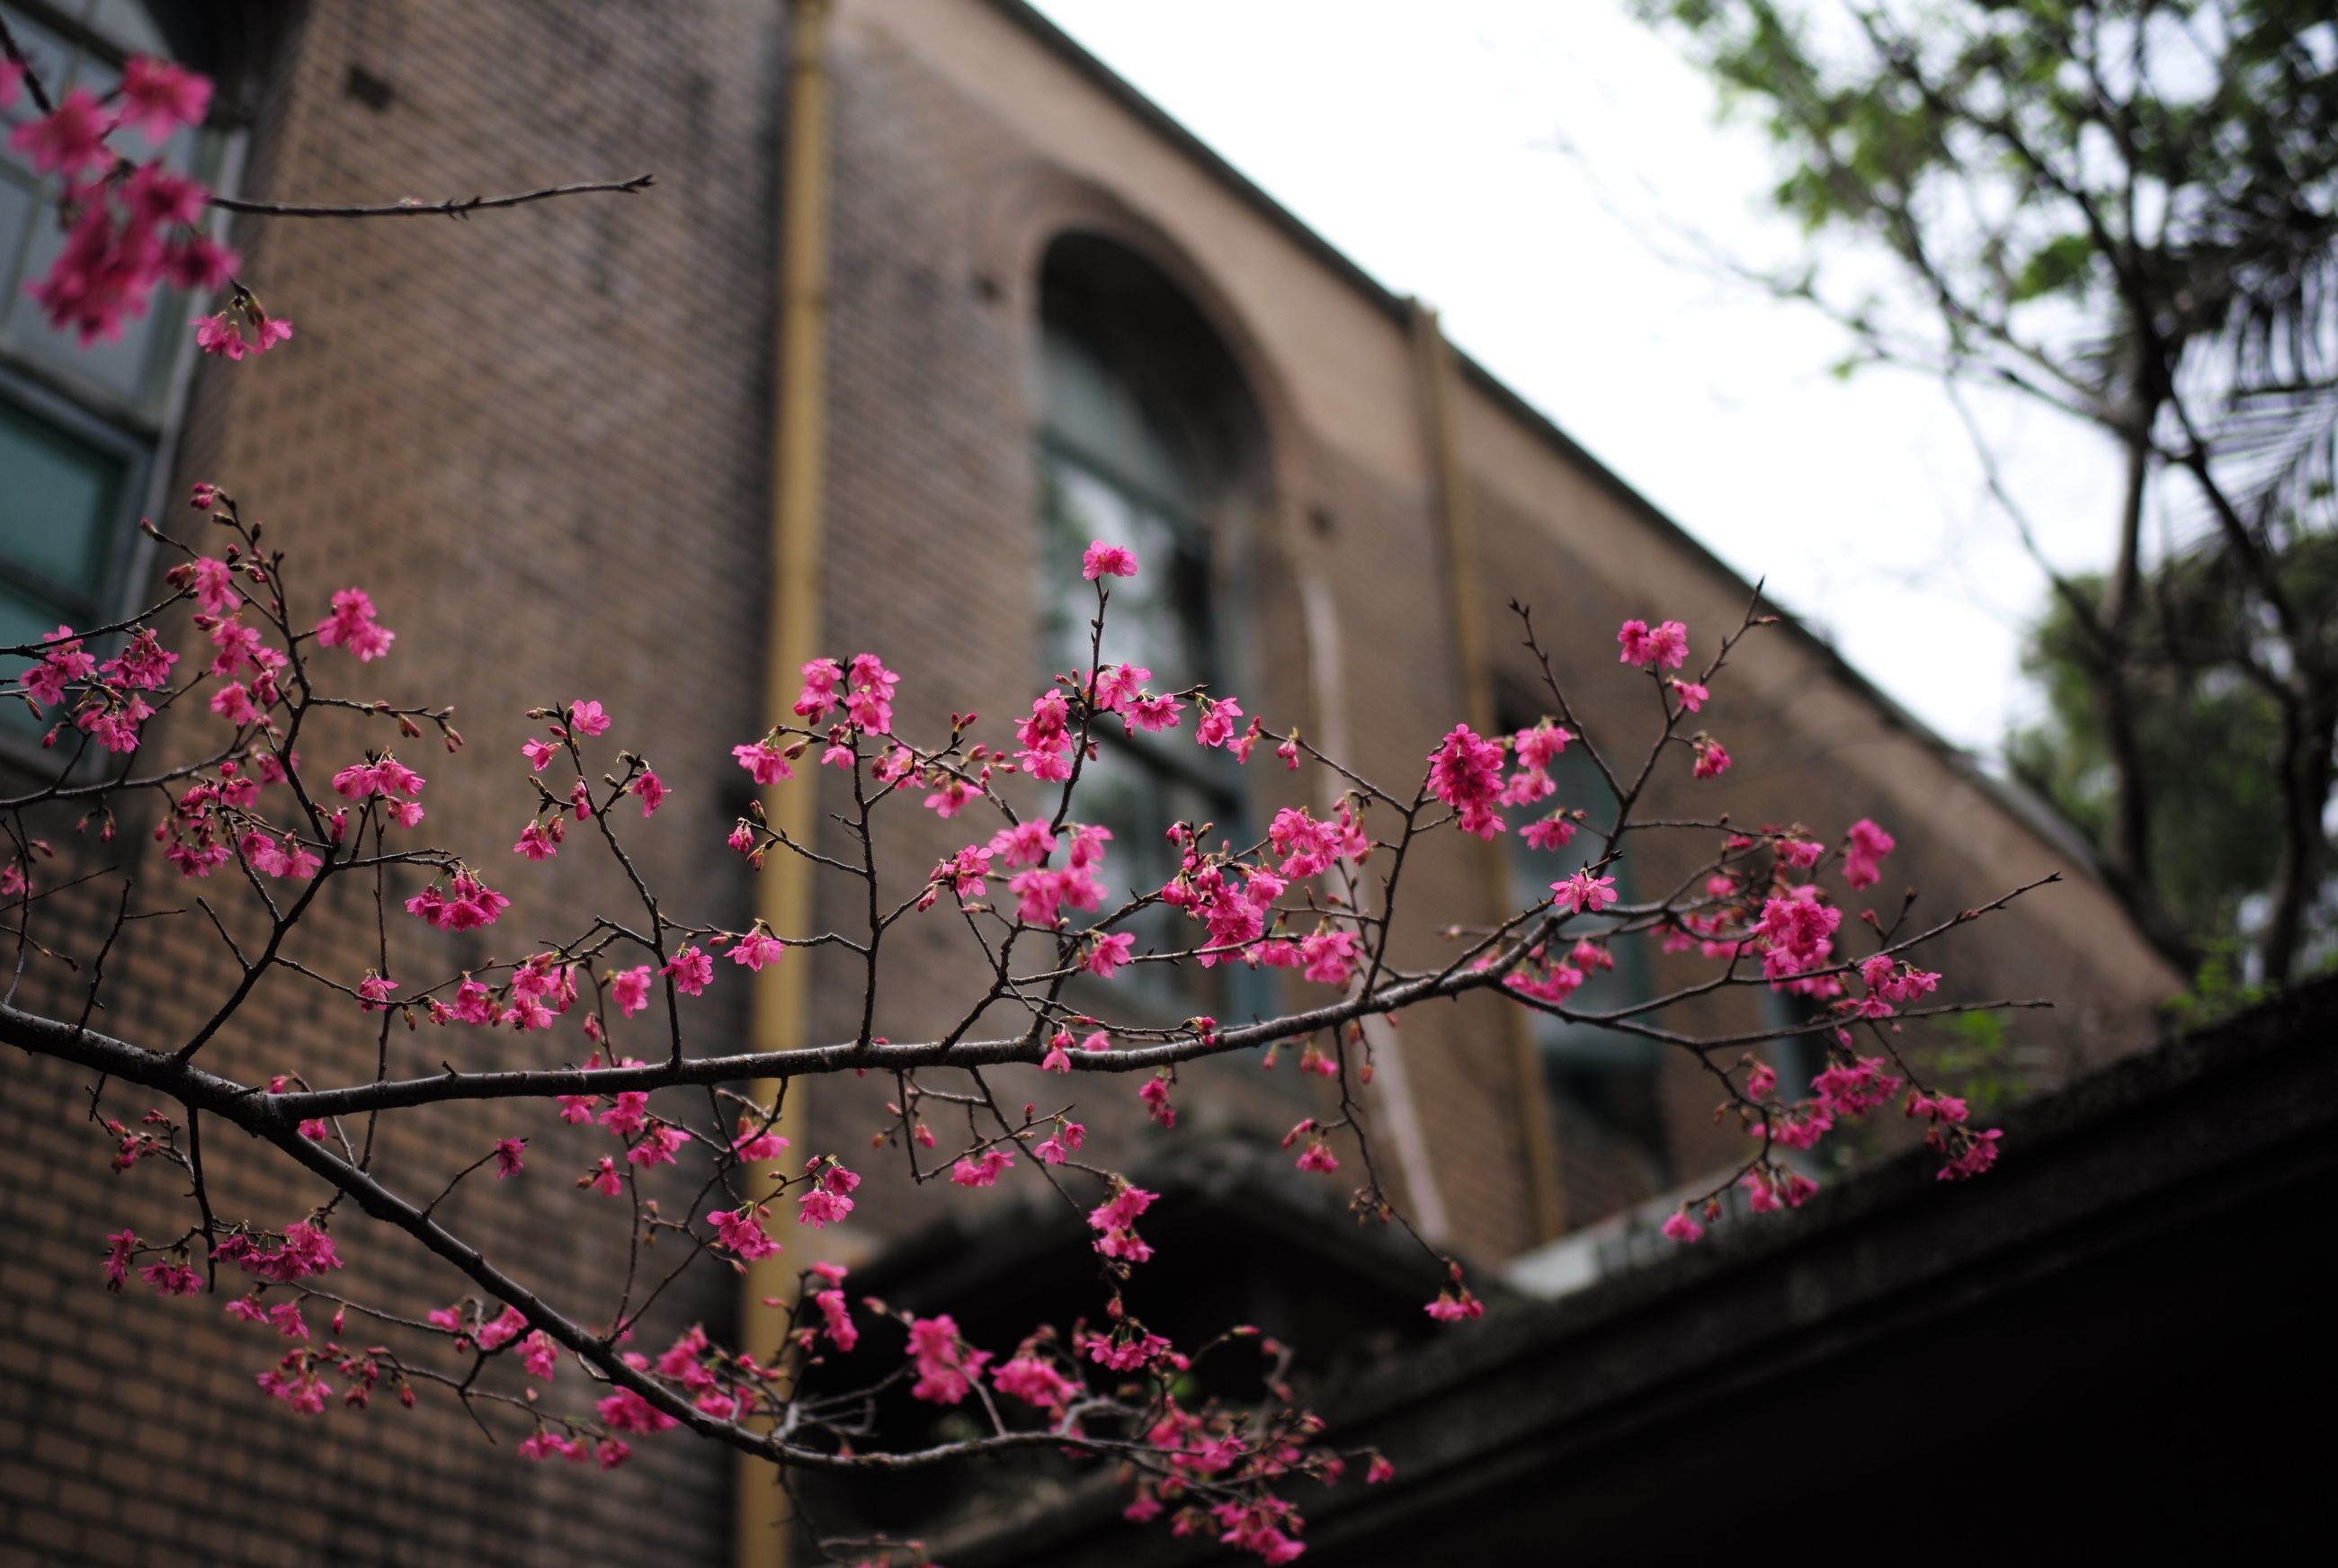 LOW ANGLE VIEW OF PINK FLOWERING PLANT BY BUILDING